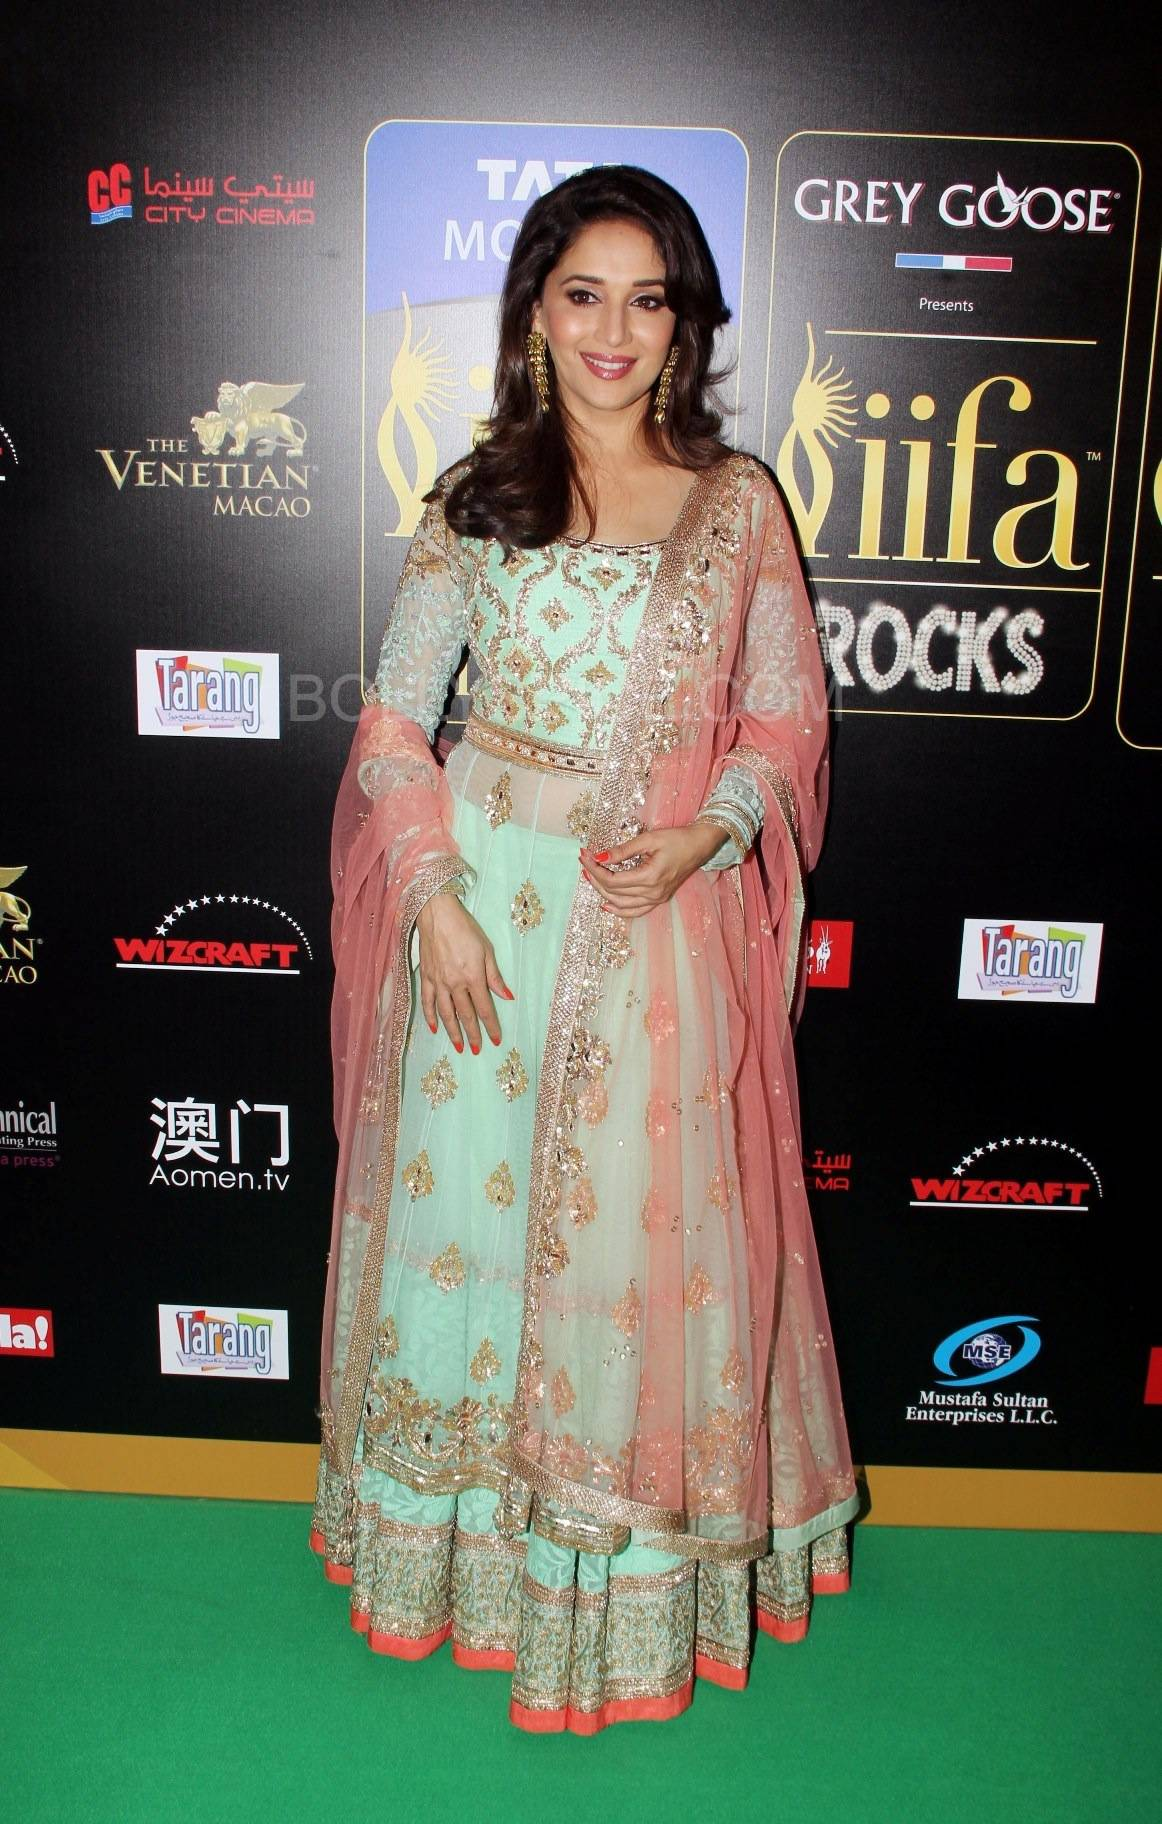 Madhuri Dixit Nene at IIFA Rocks Green carpet